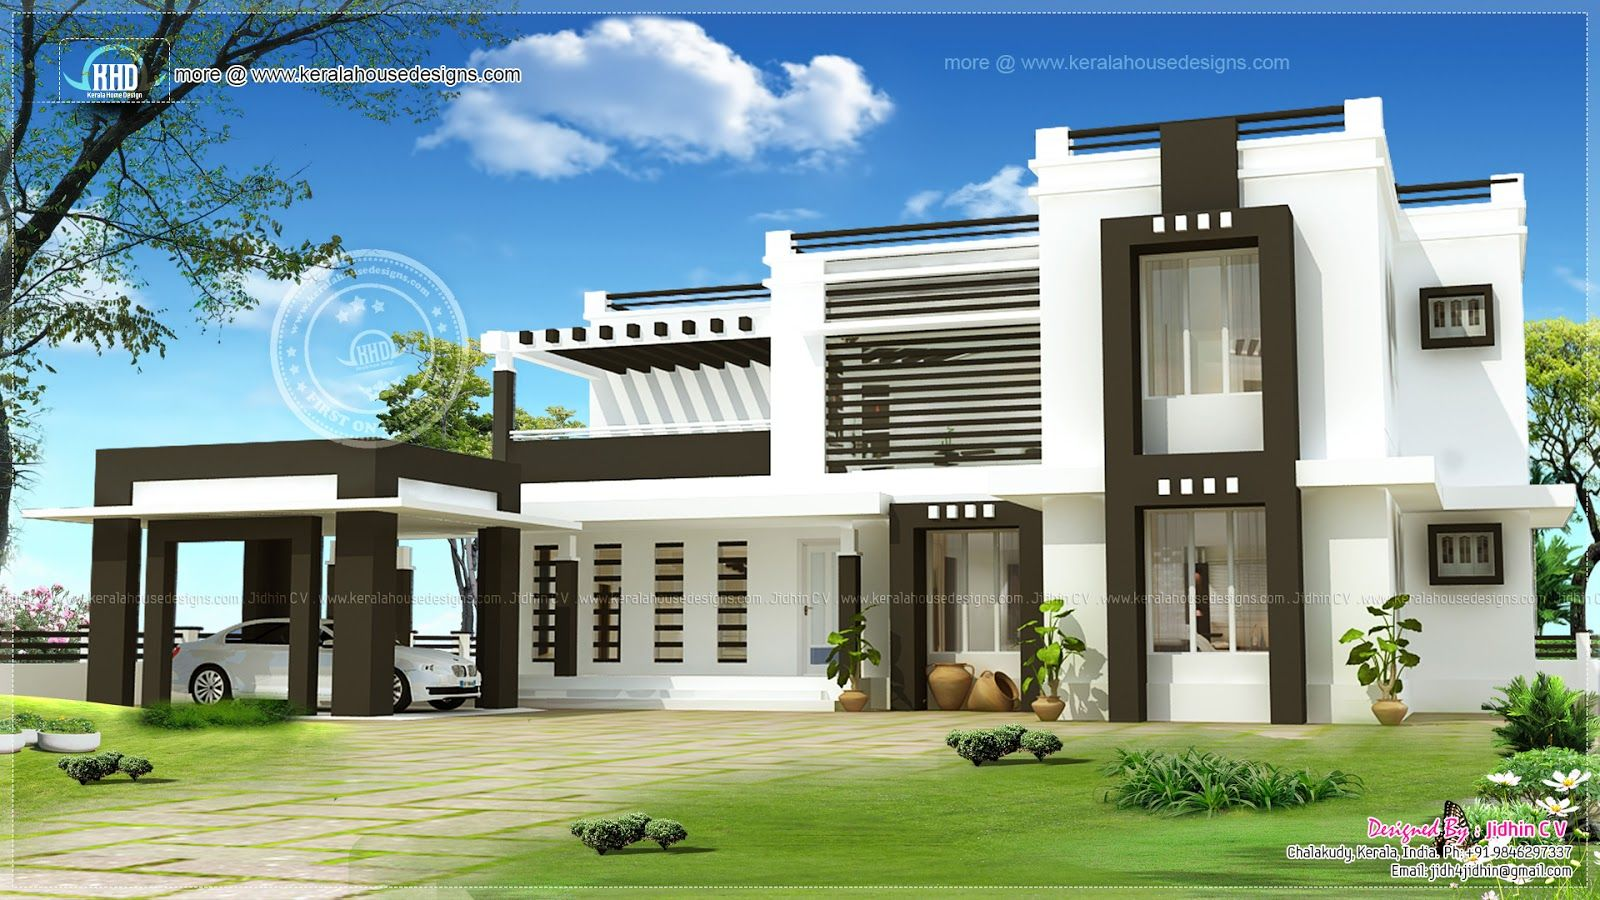 Exterior Exterior Home Design Design Saveemail Harts Contemporary - home design exterior in india